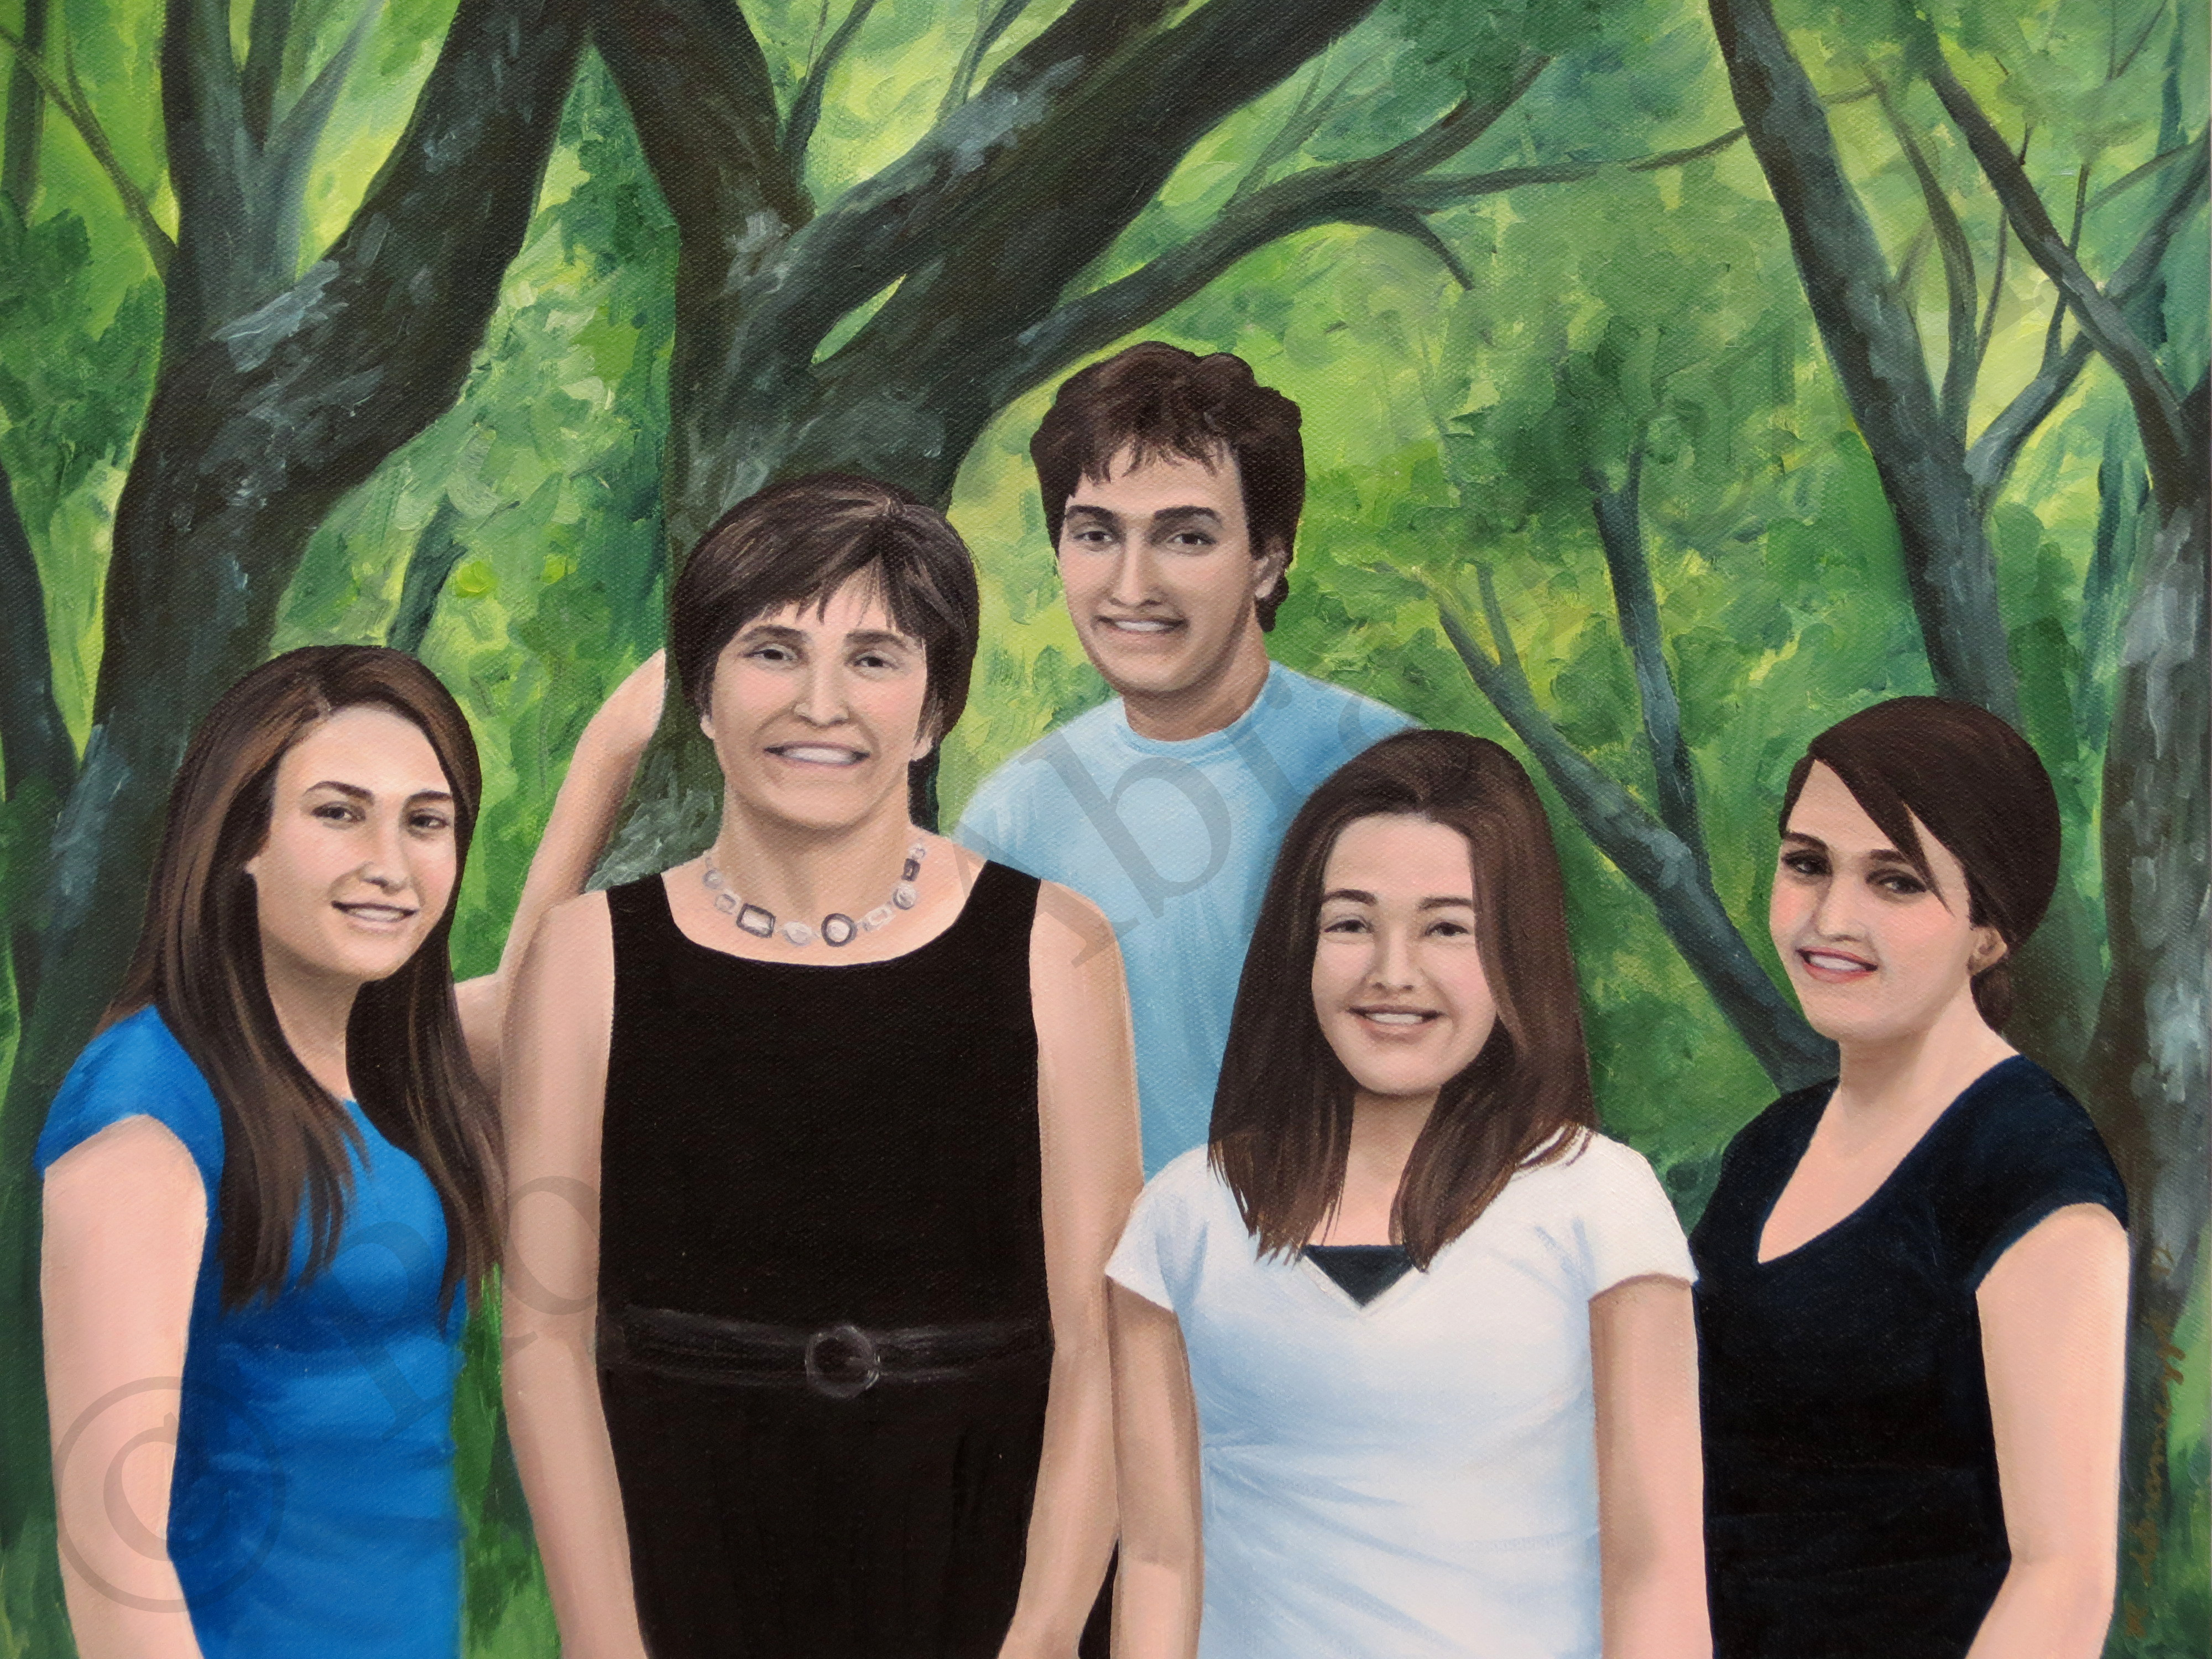 Sholy Family Portrait, by Rosie Abramczyk, Oil Paint, 2012